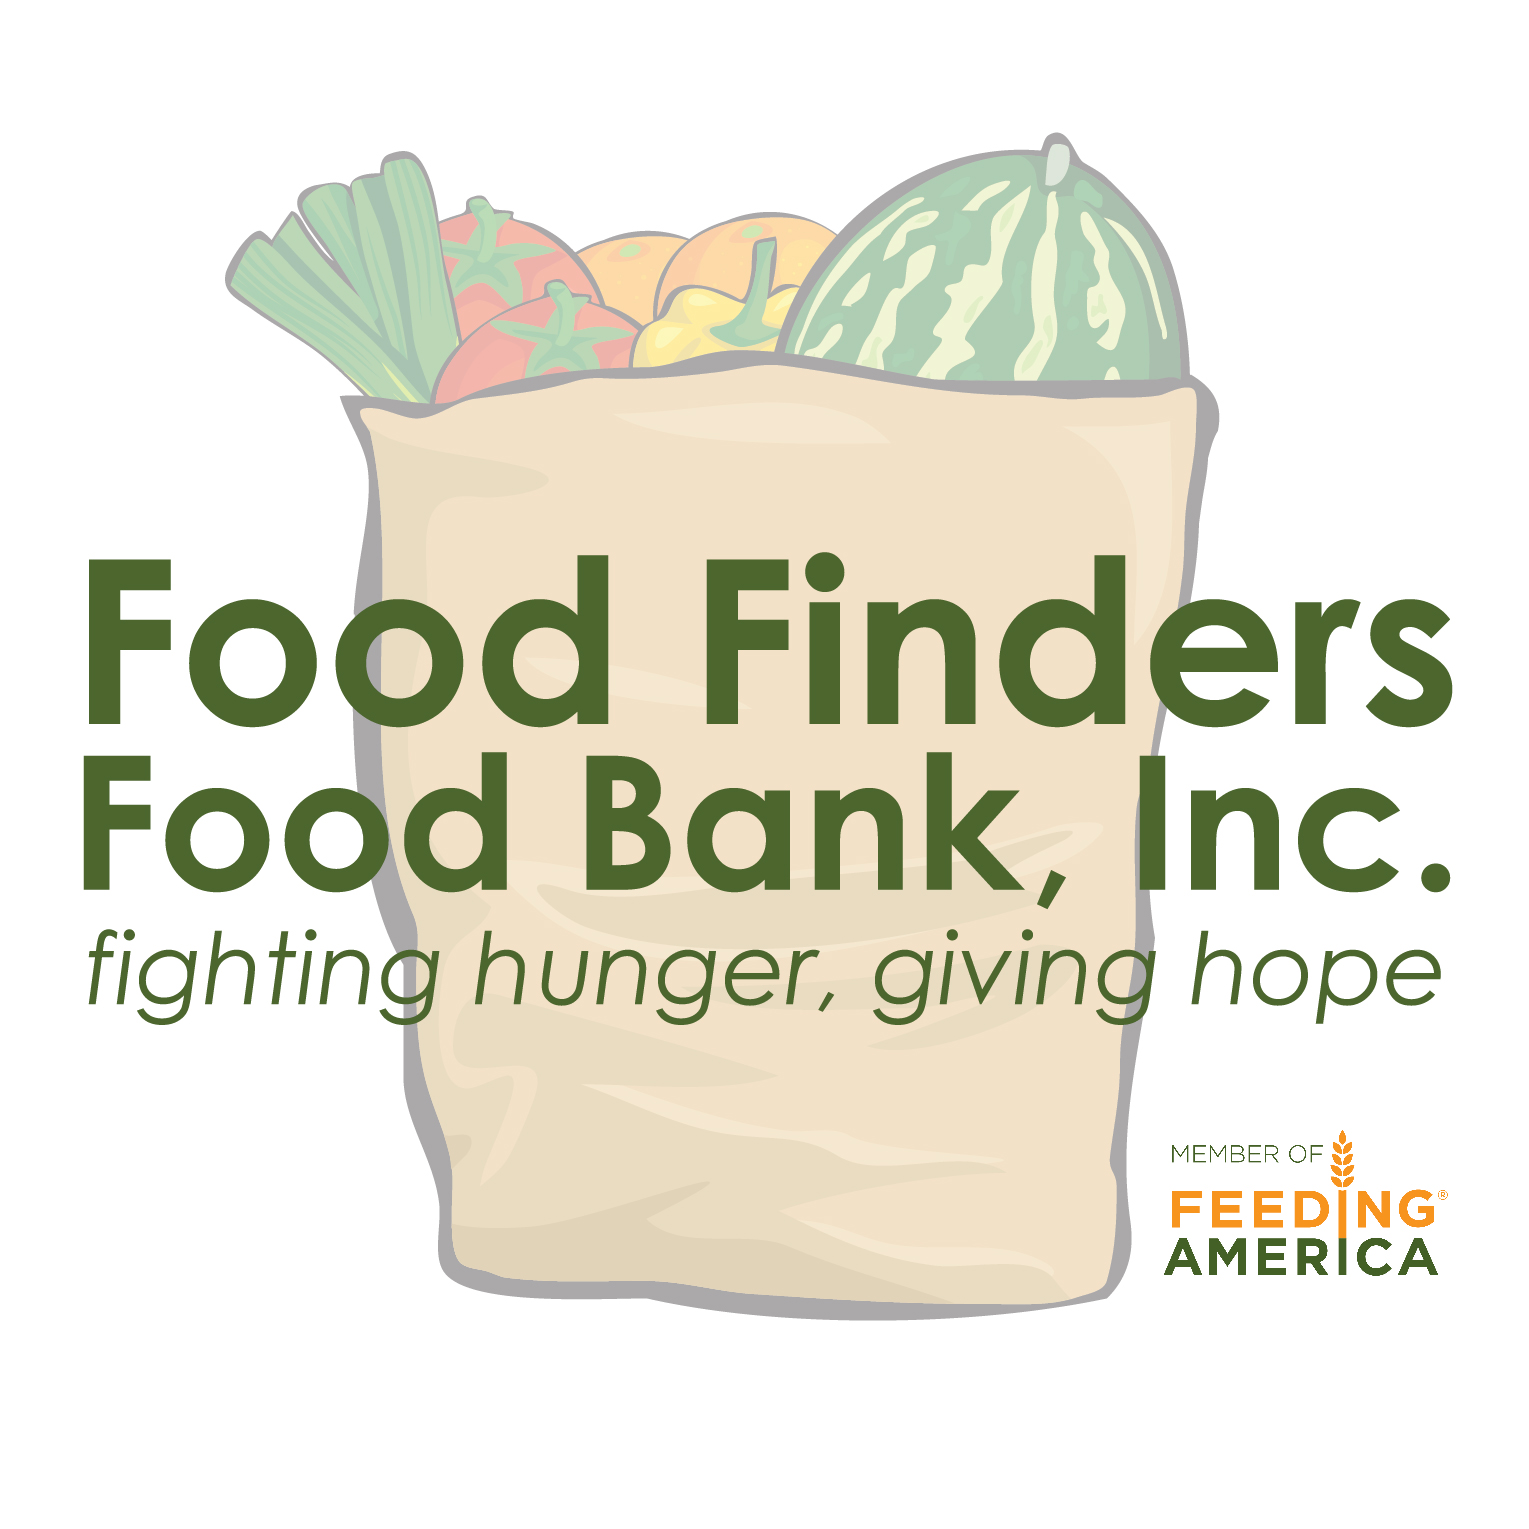 PURDUE UNIVERSITY COLLEGE OF AGRICULTURE FOOD DRIVE COMPETITION 2017 Photo